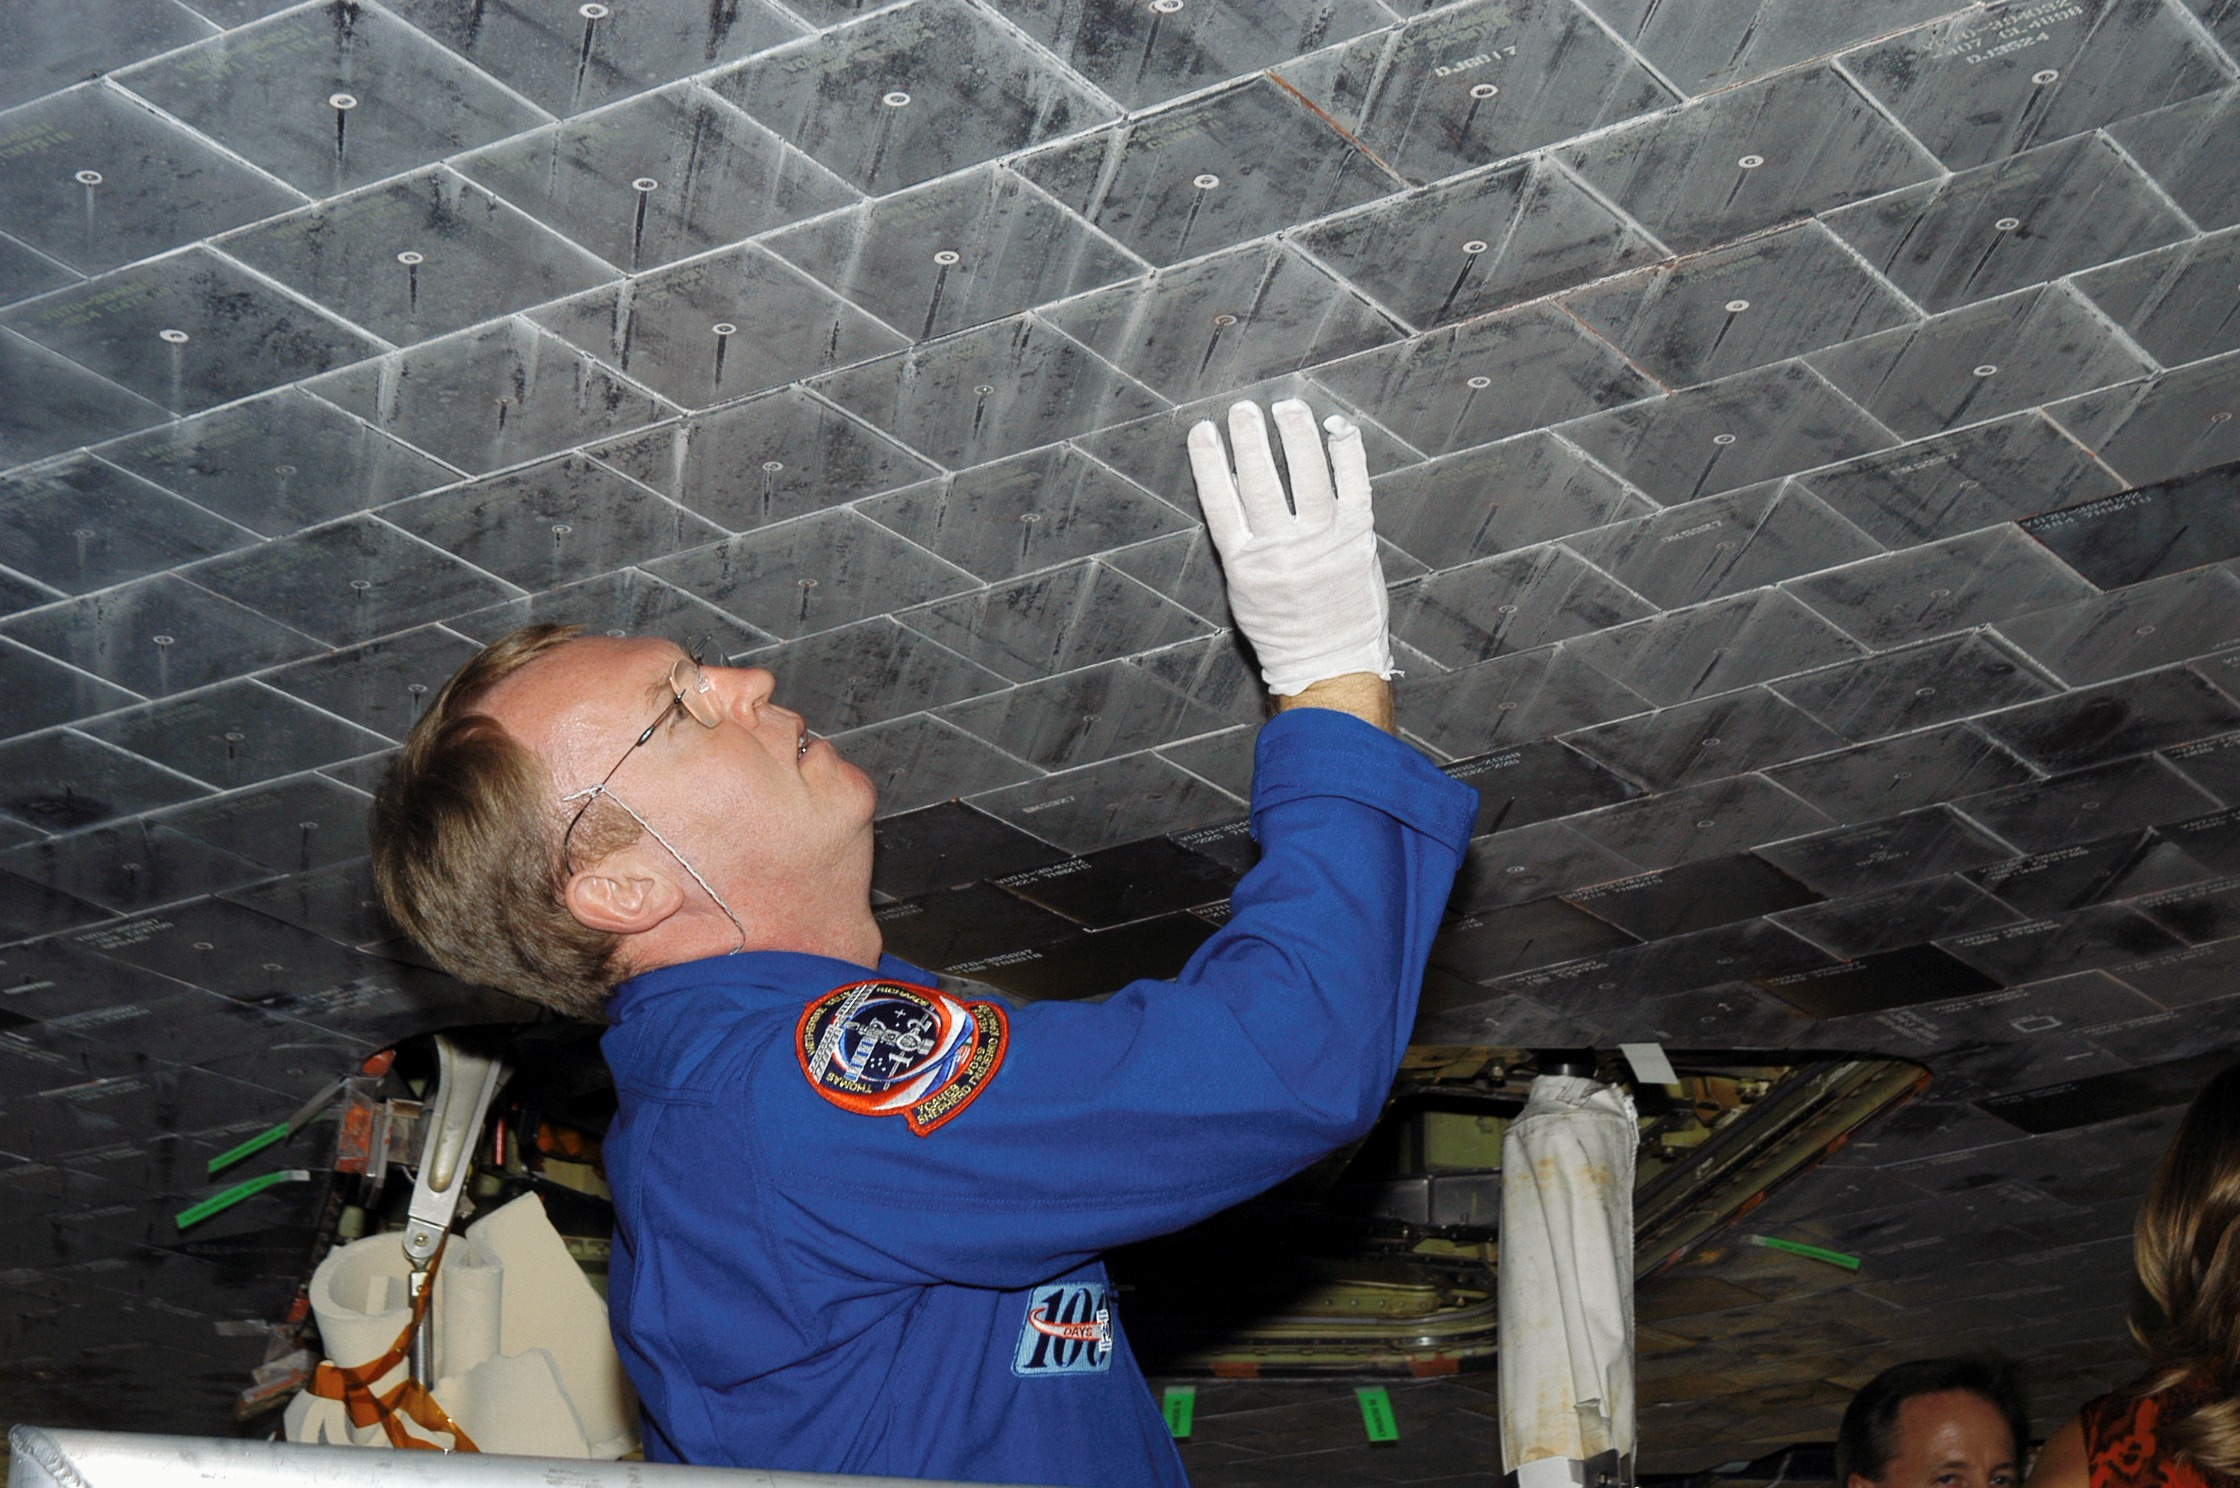 space shuttle heat shield tiles - photo #3